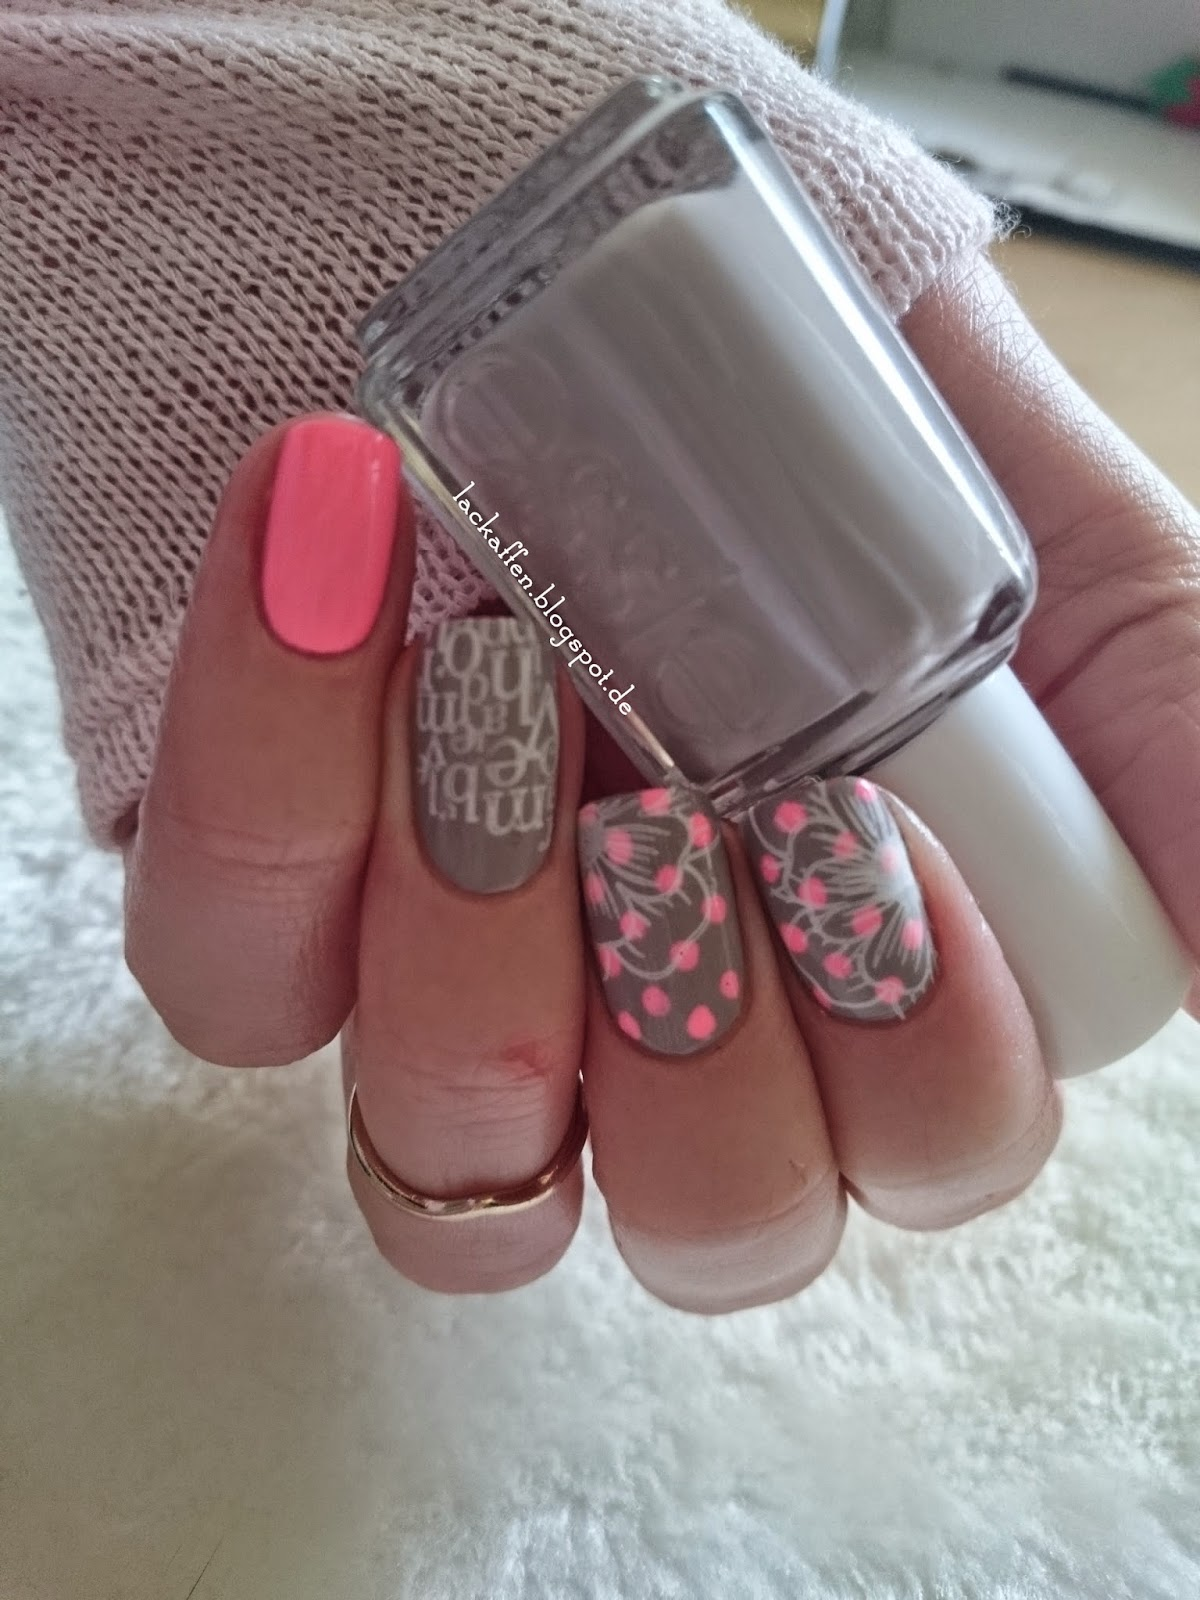 nageldesign french mit muster - Nageldesign ganz leichtes Muster